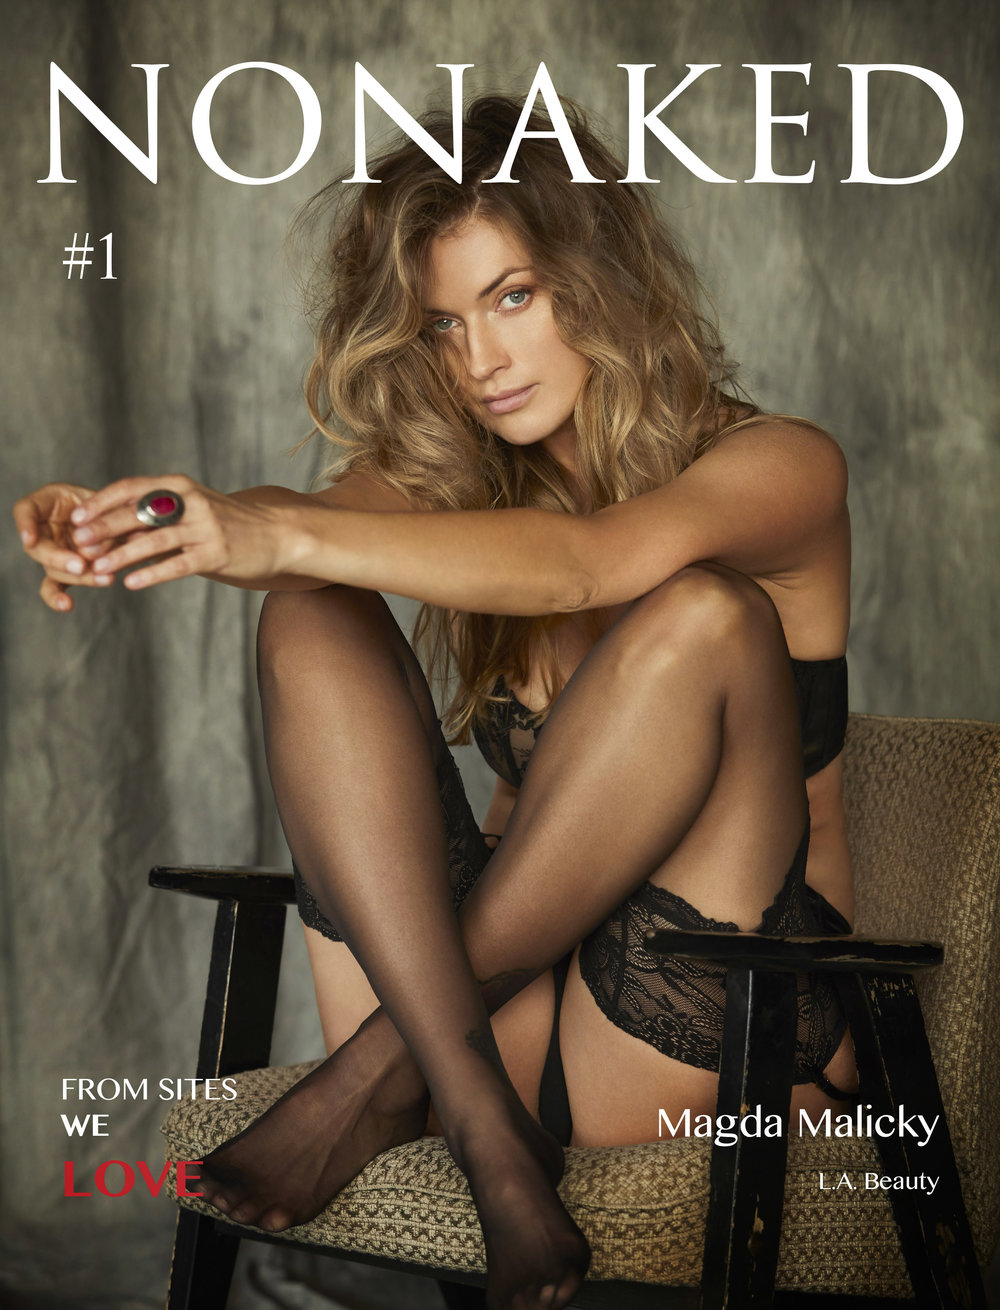 Nonaked cover 1.jpg